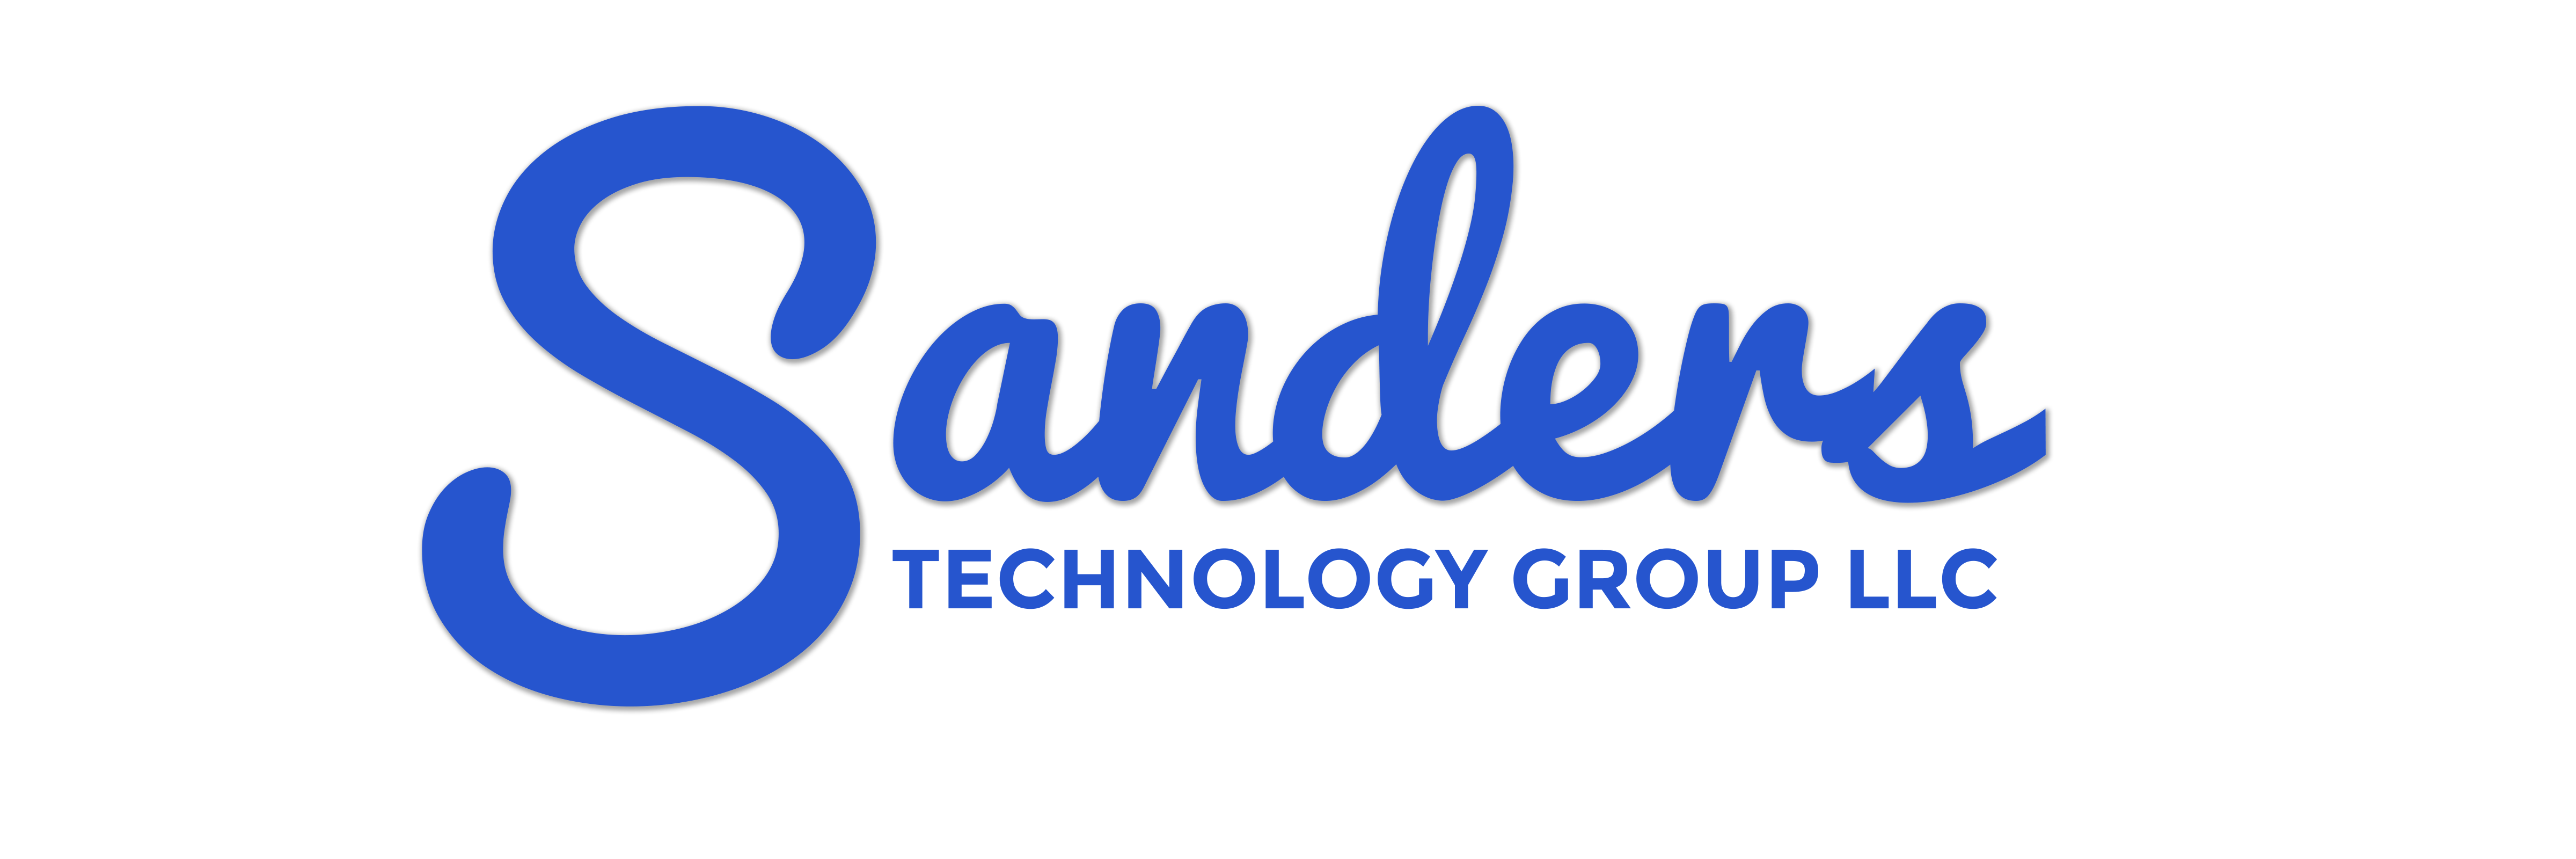 Cursive text that spells out Sanders with non-cursive text that spells out technology group llc.